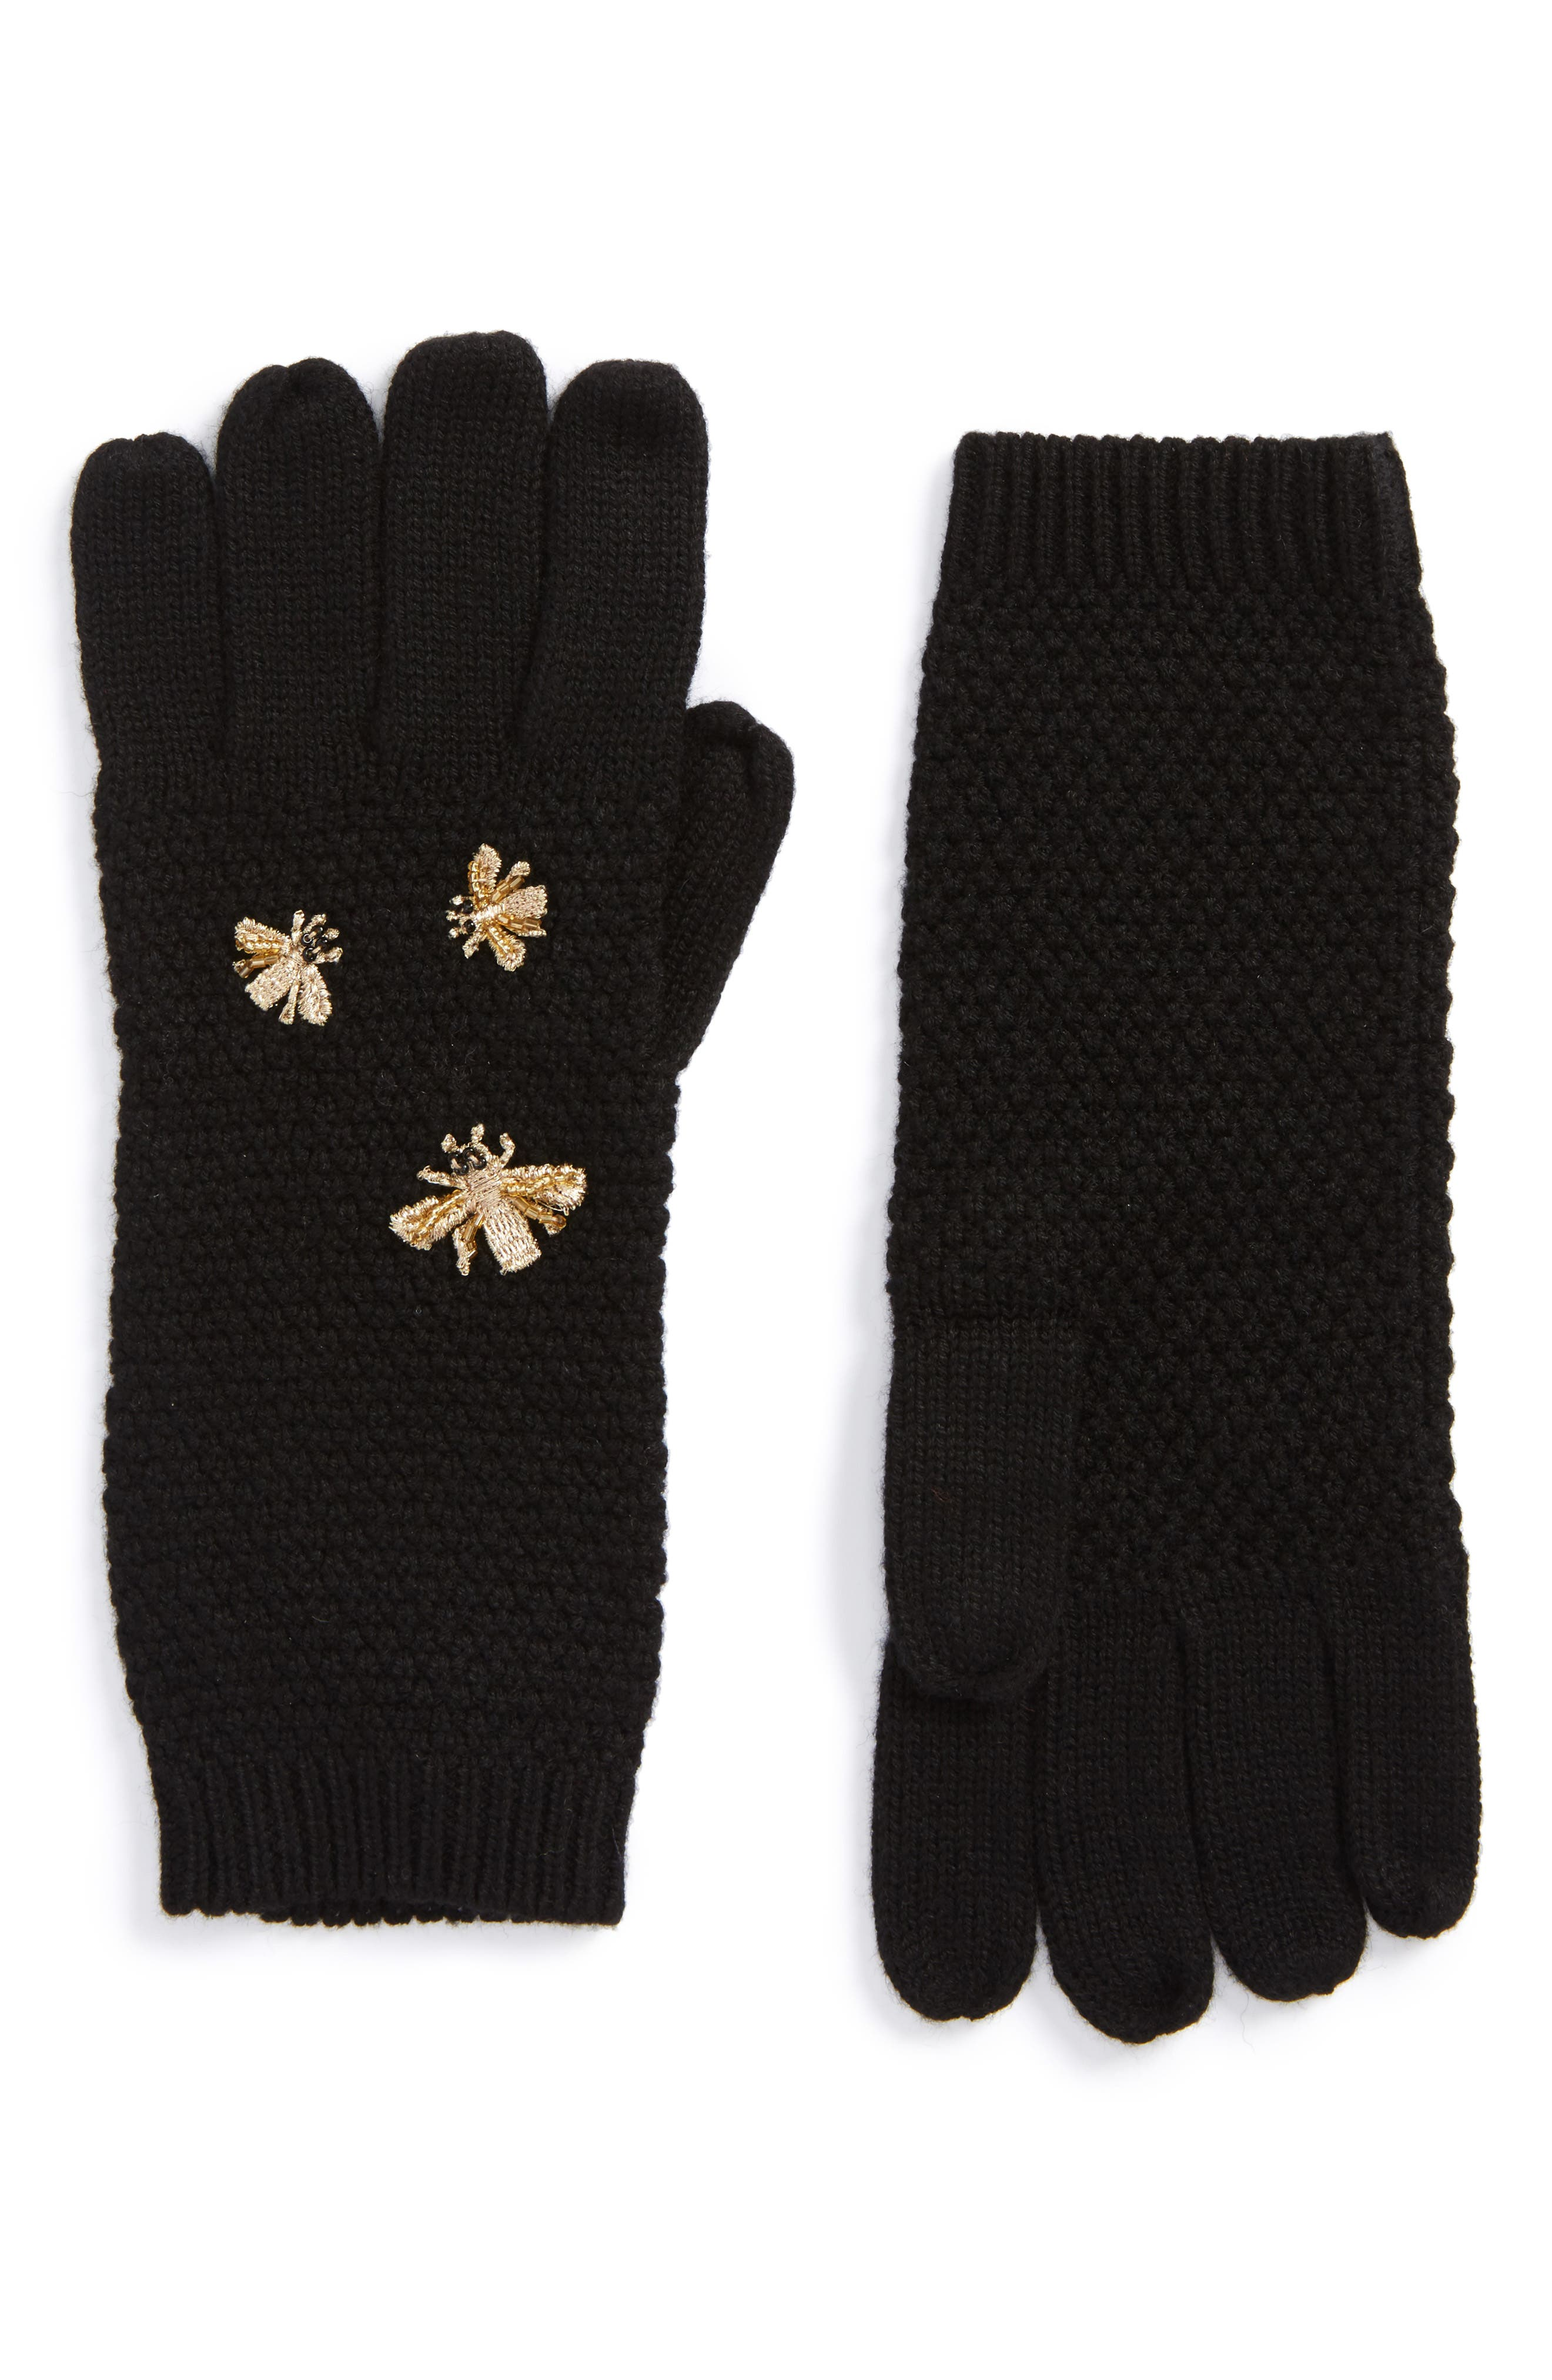 The Bees Knees Embellished Gloves,                             Main thumbnail 1, color,                             Black